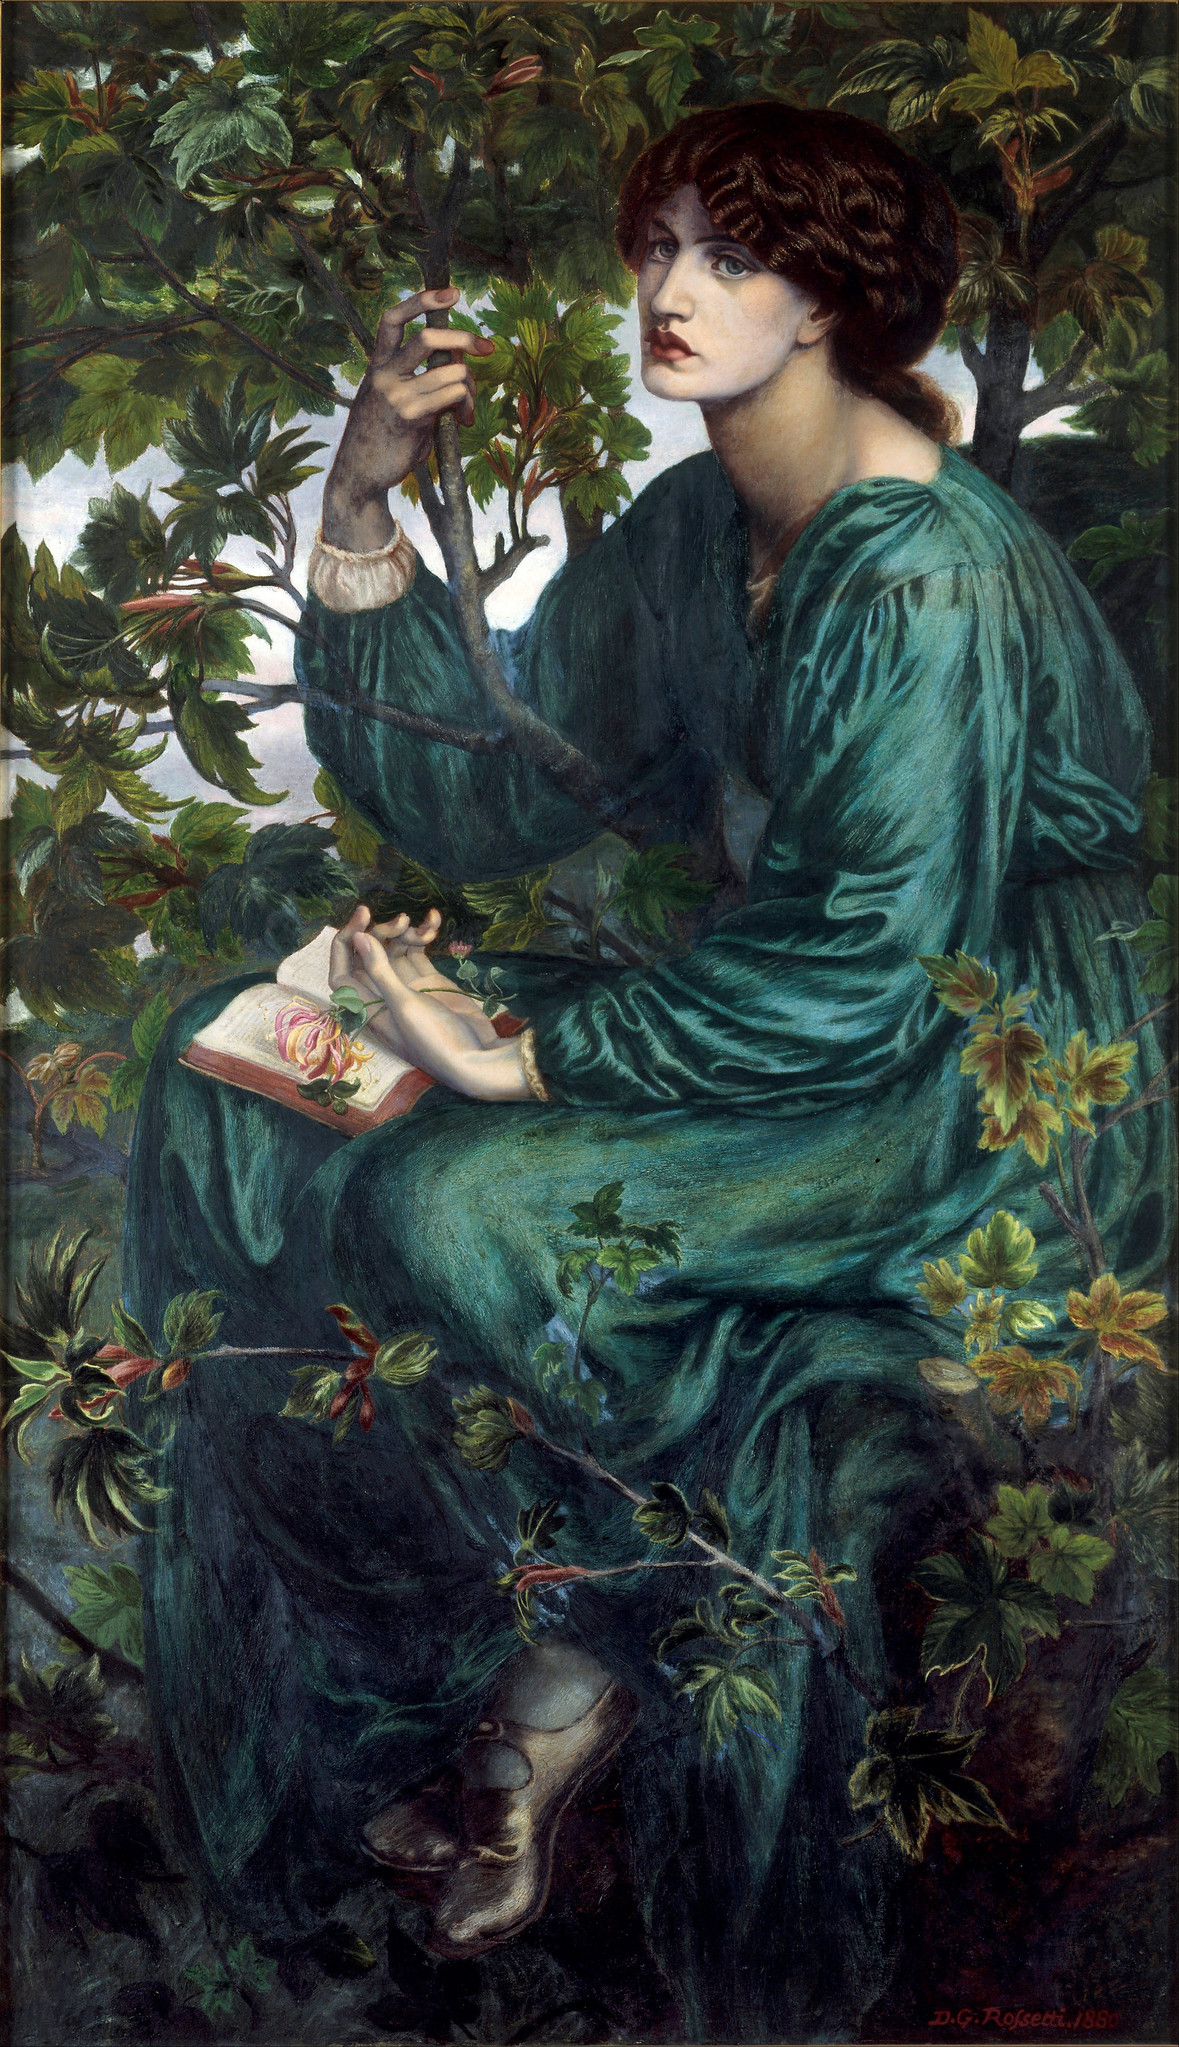 The Day Dream by Dante Gabriel Rossetti - 1880